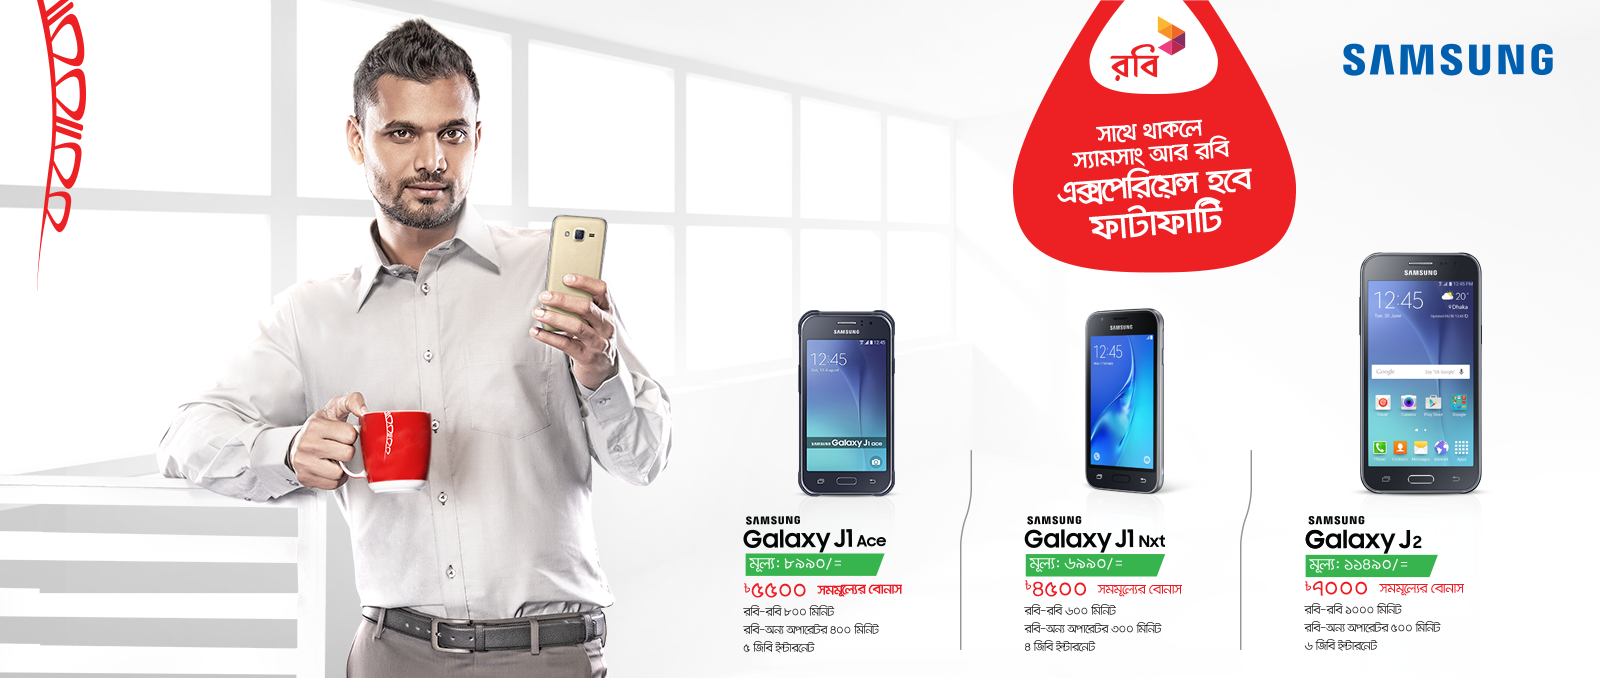 Robi samsung mobile offer 2016: With J1 Nxt, J1 Ace, J2 smartphone